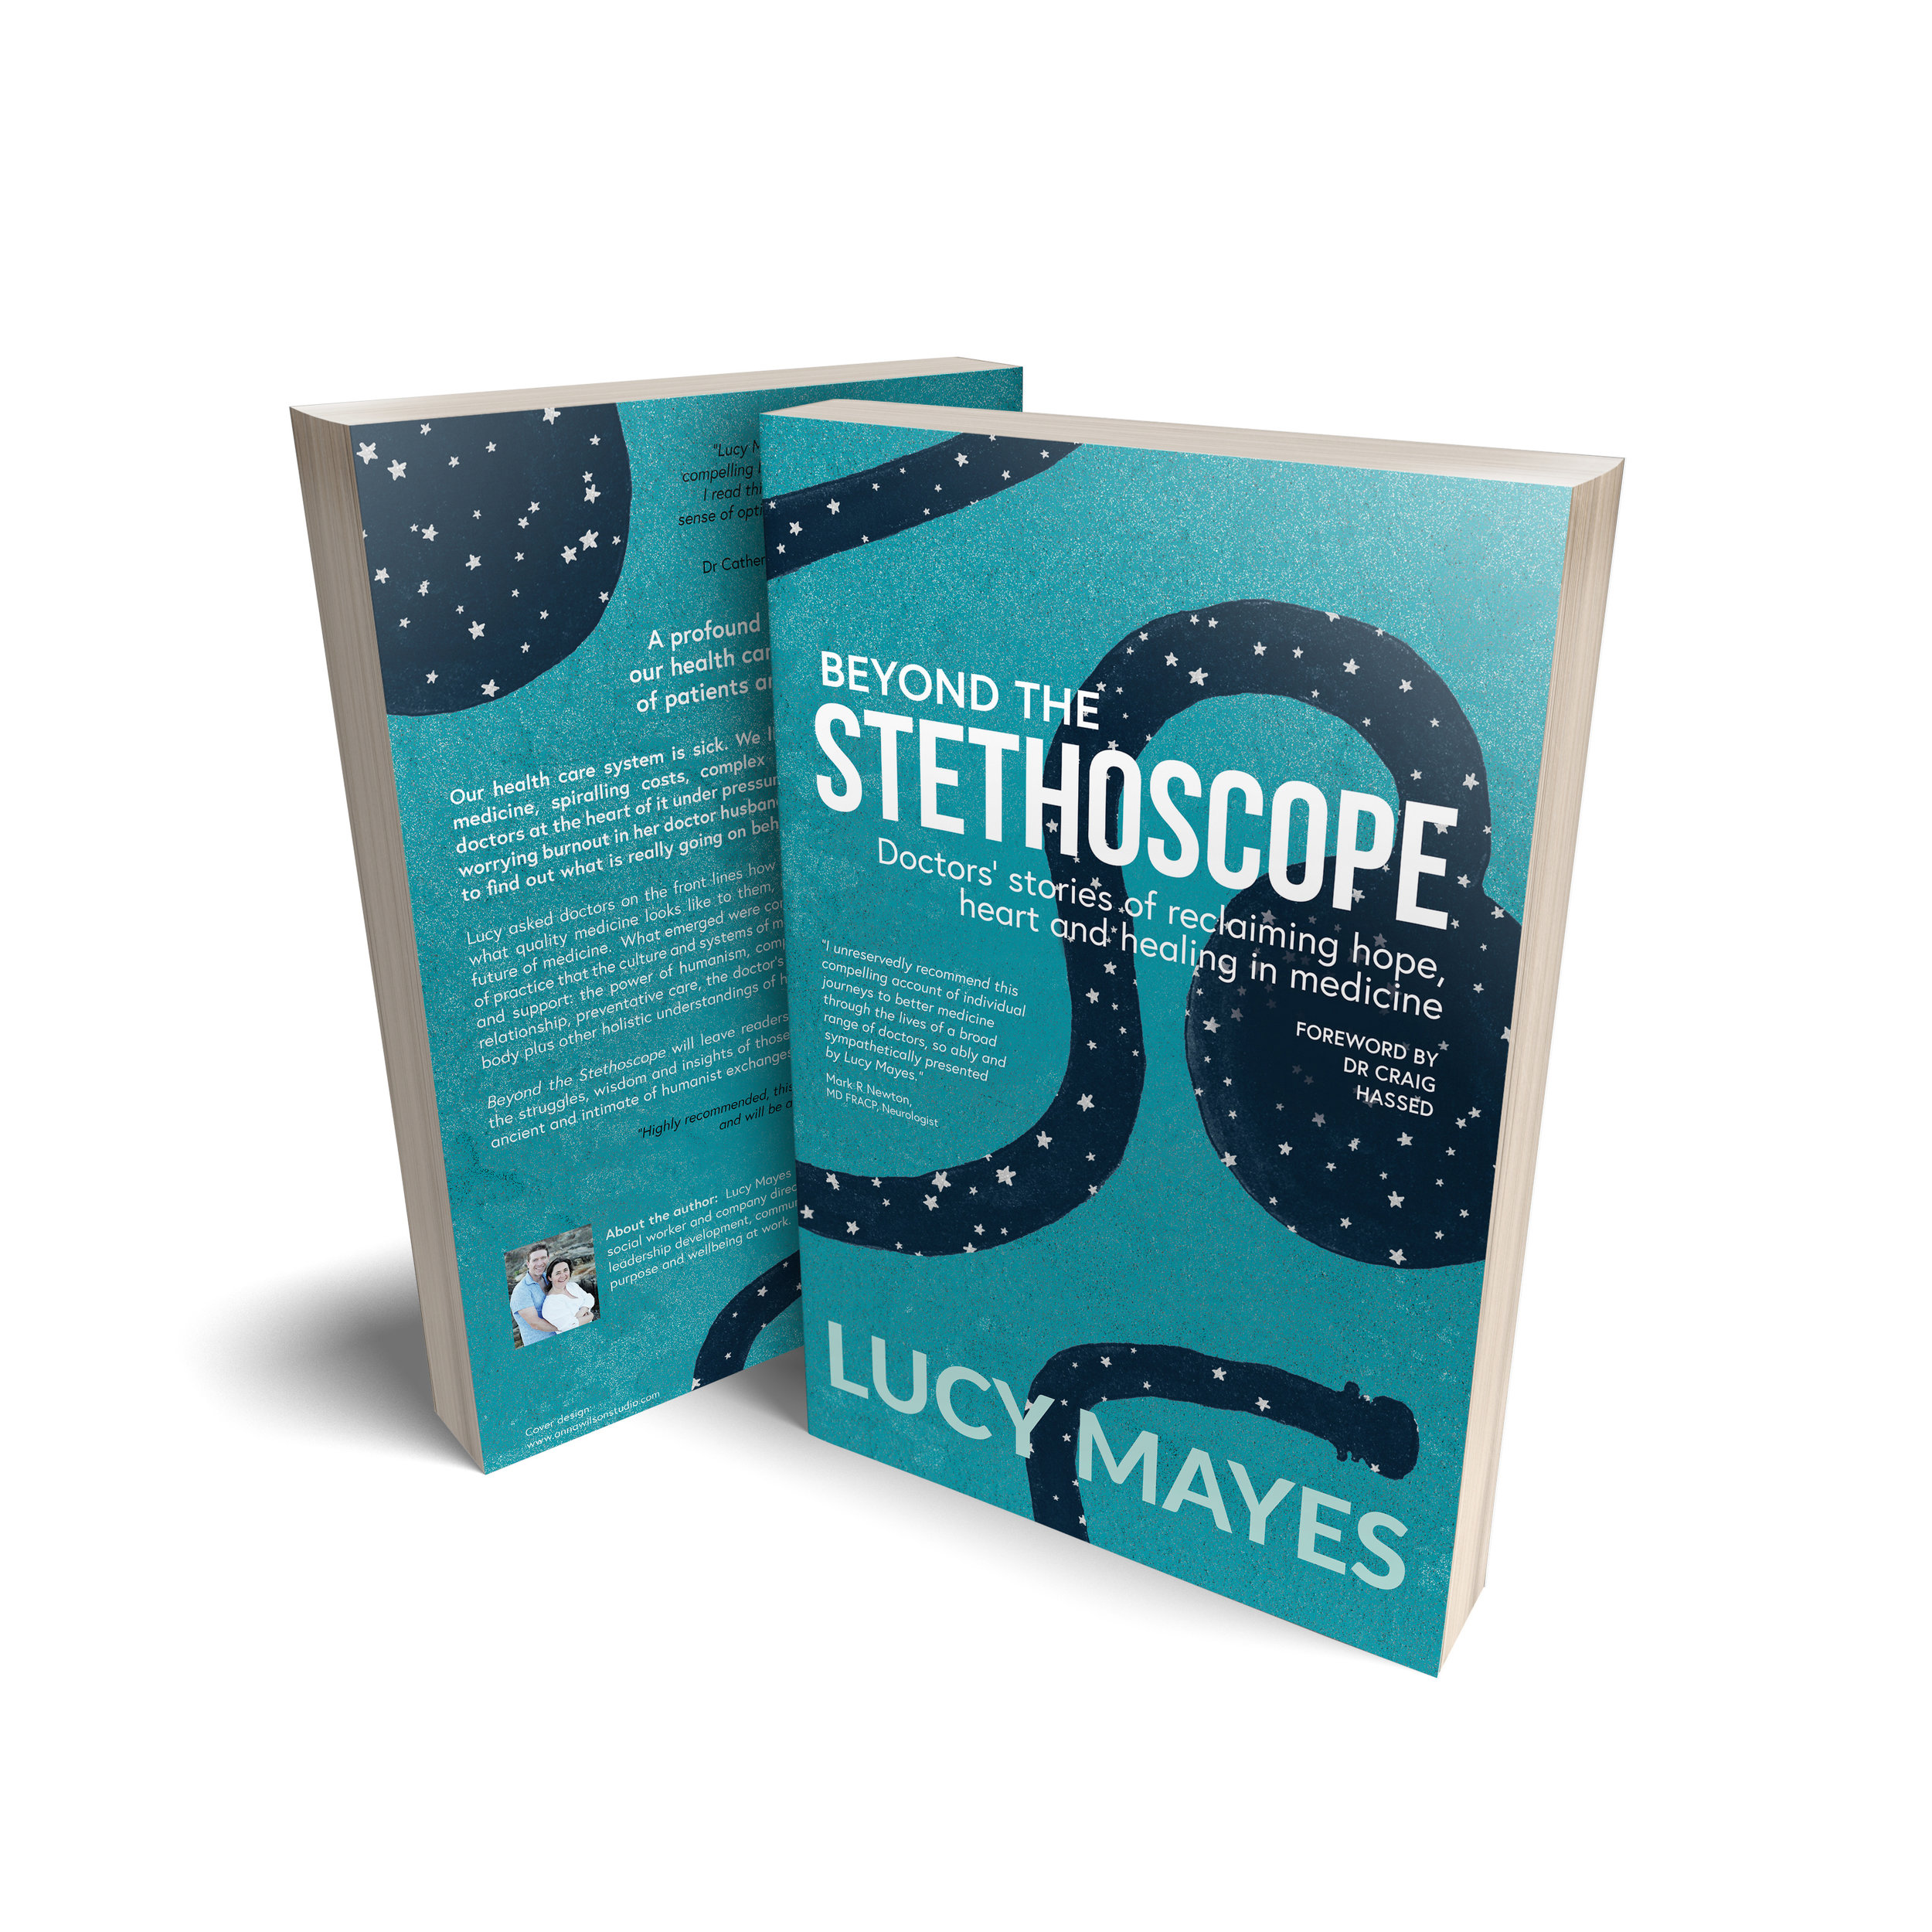 Beyond the Stethoscope - Doctors' stories of reclaiming hope, heart and healing in medicine